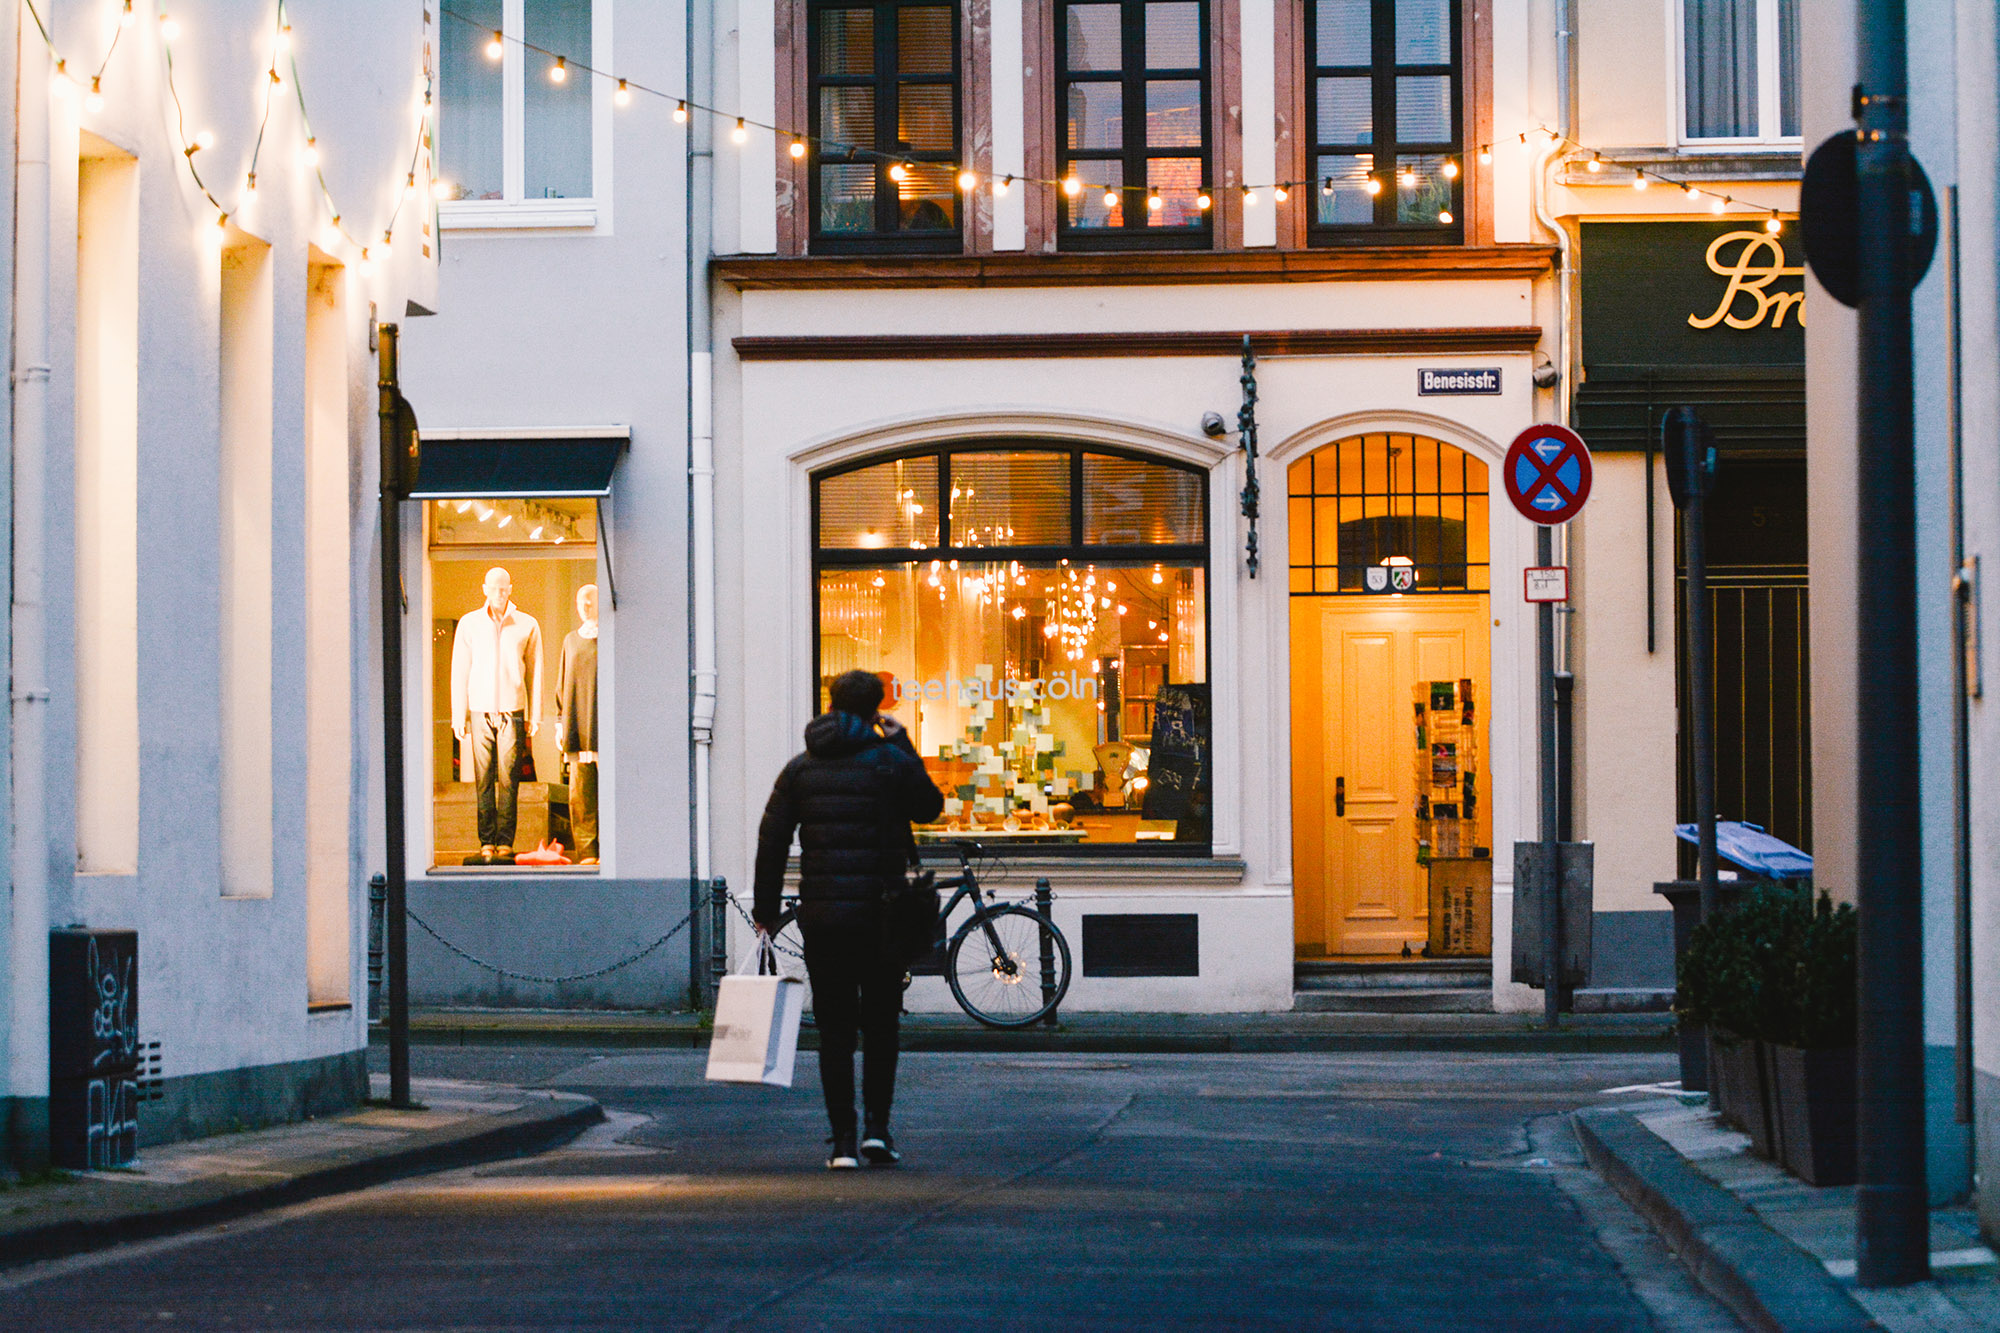 A shopper walks in a nearly empty street in Cologne, Germany on January 5, 2021.